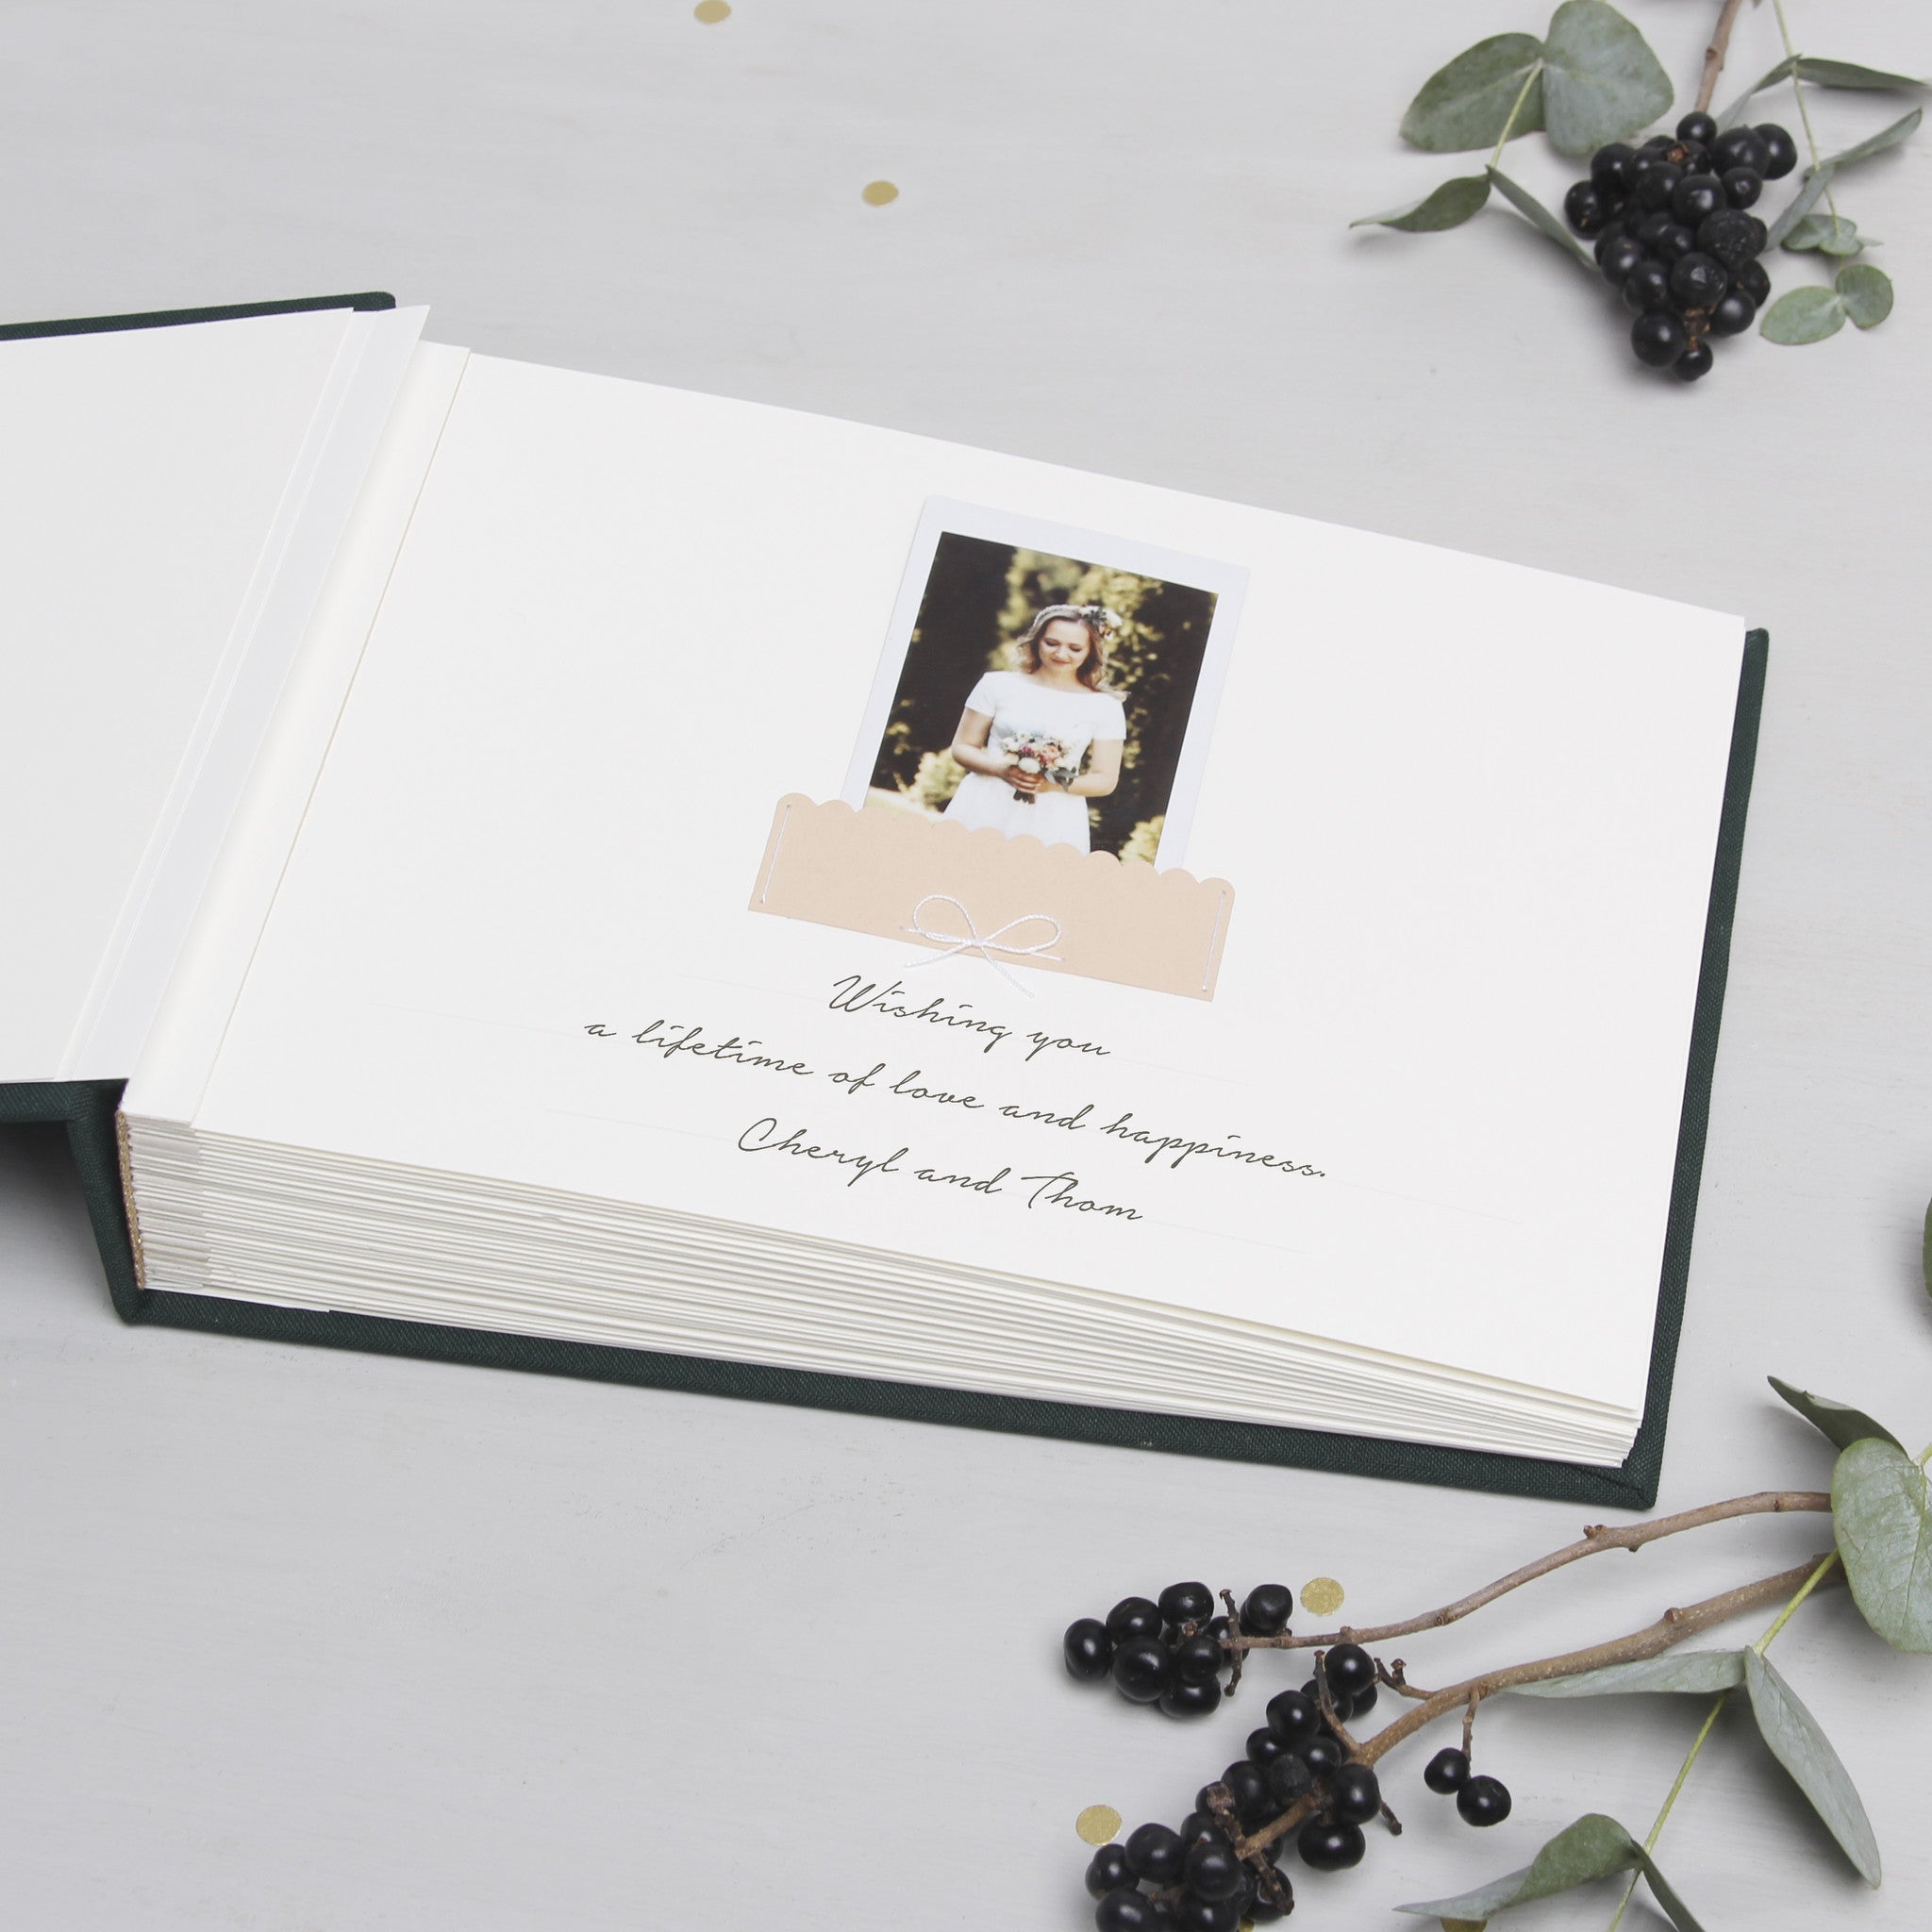 Guest Book Sign in Book Wedding Instant Photo Album Forest Green with Paper Label by Liumy - Liumy